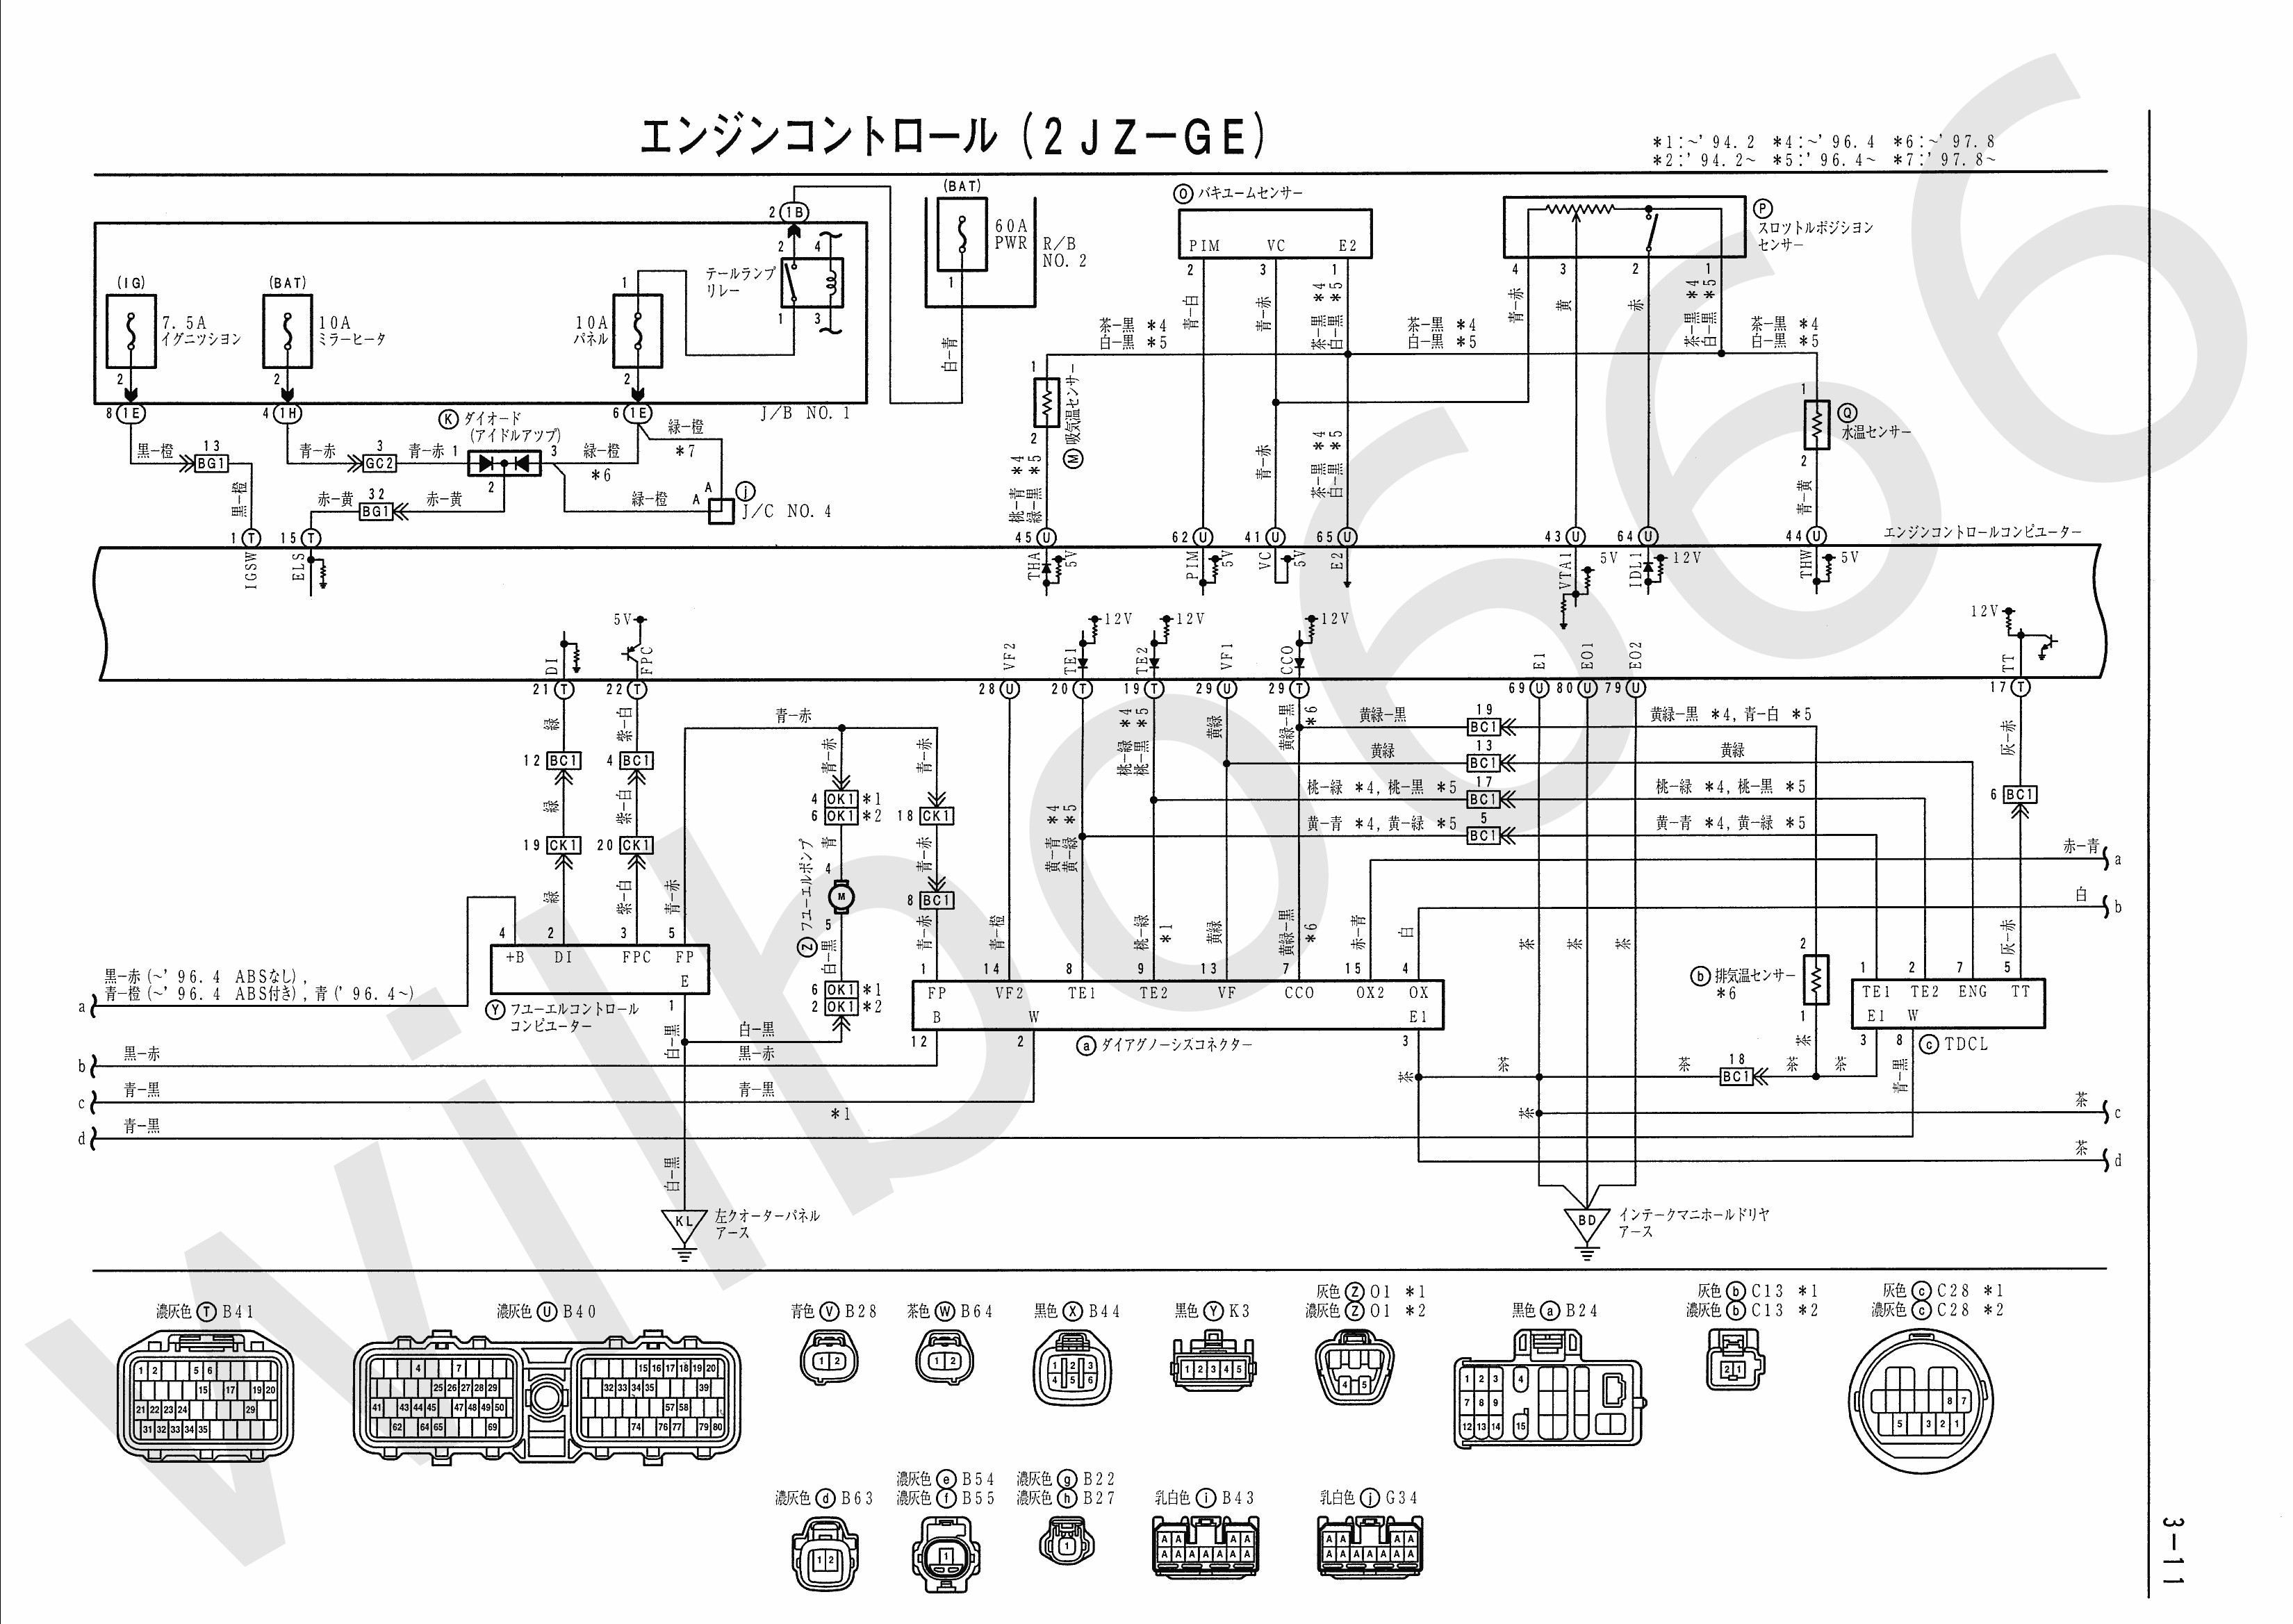 Engine Coolant Temperature Sensor Wiring Diagram Wilbo666 2jz Ge Jza80 Supra Engine Wiring Of Engine Coolant Temperature Sensor Wiring Diagram